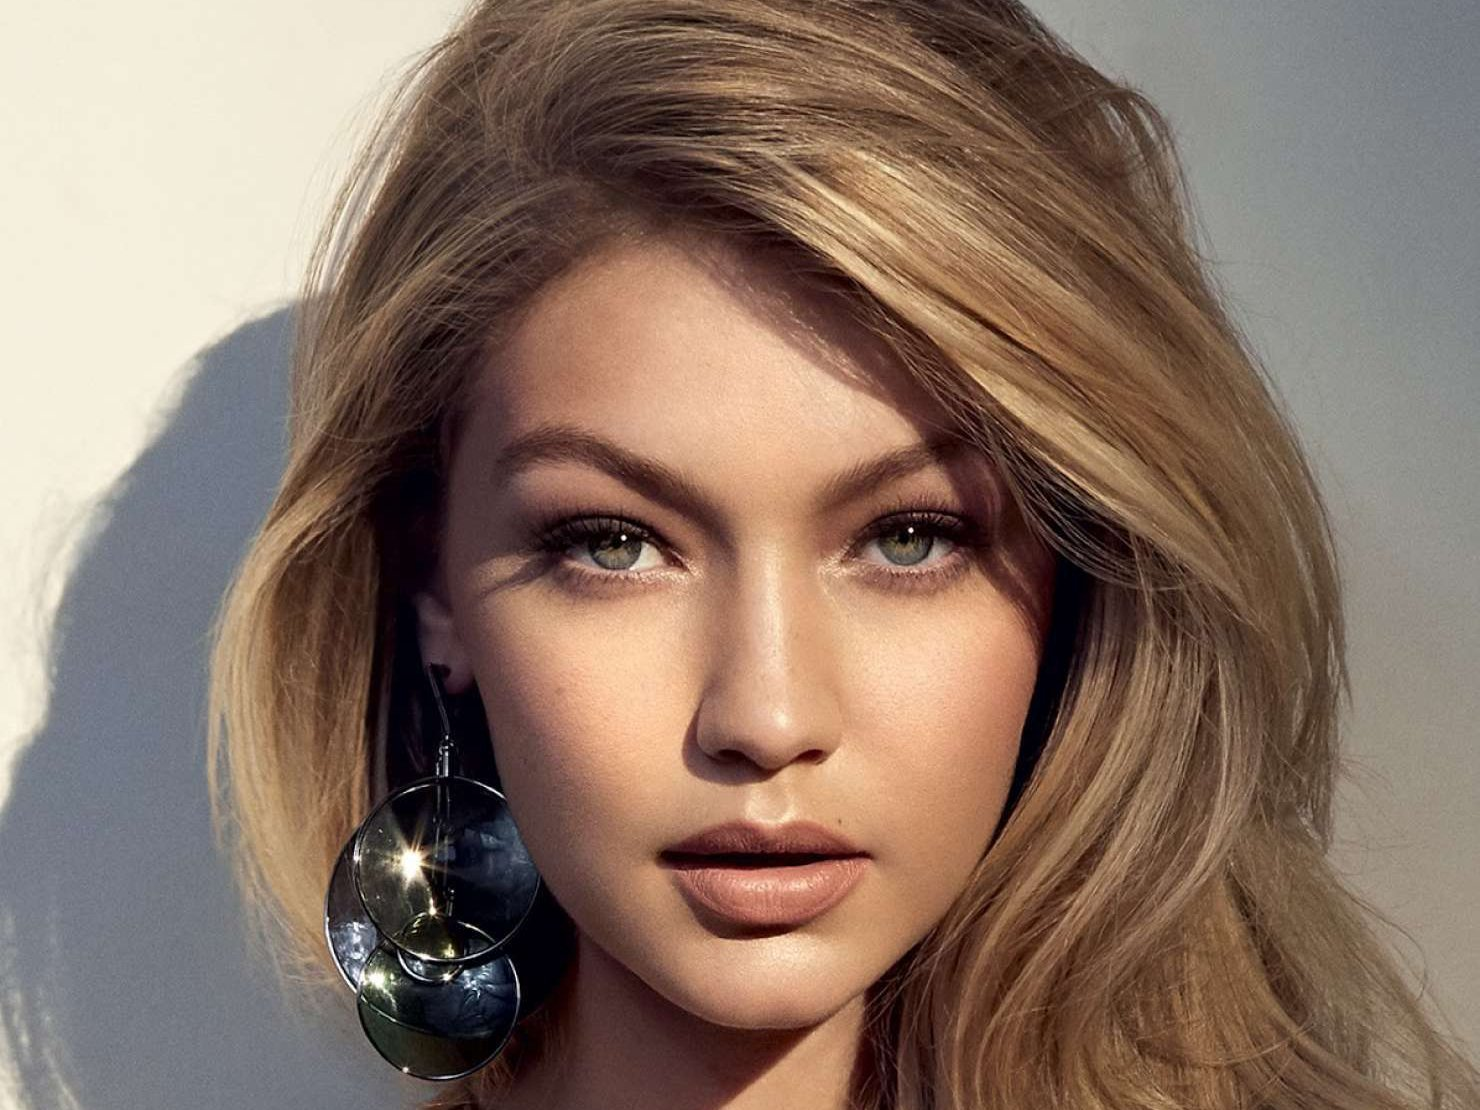 d6ddf20d 59 Gigi Hadid HD Wallpapers | Background Images - Wallpaper Abyss